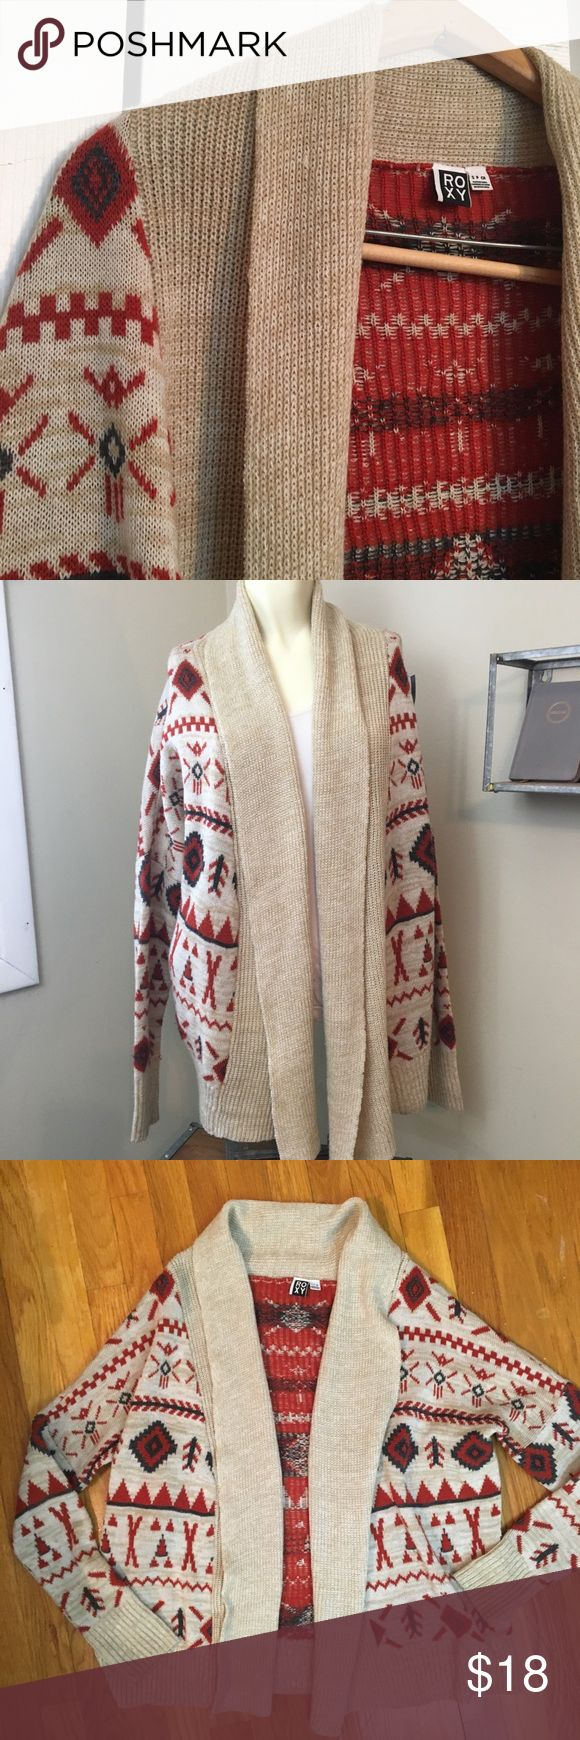 ROXY Tribal Print Cardigan Rust and gray colored designs on this tan cardigan. Aztec it tribal print. Open front. EUC. Tag says small but is oversized. I'd say Medium to even possible a large, depending on how you like the fit. Arms might be tighter but nothing crazy. Roxy Sweaters Cardigans